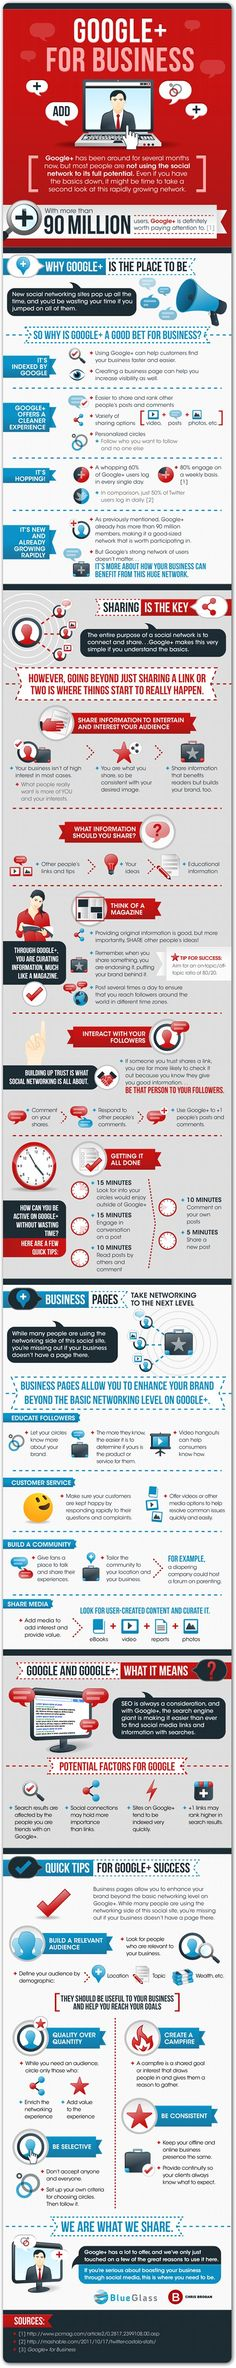 Infographic: How brands can benefit from Google+